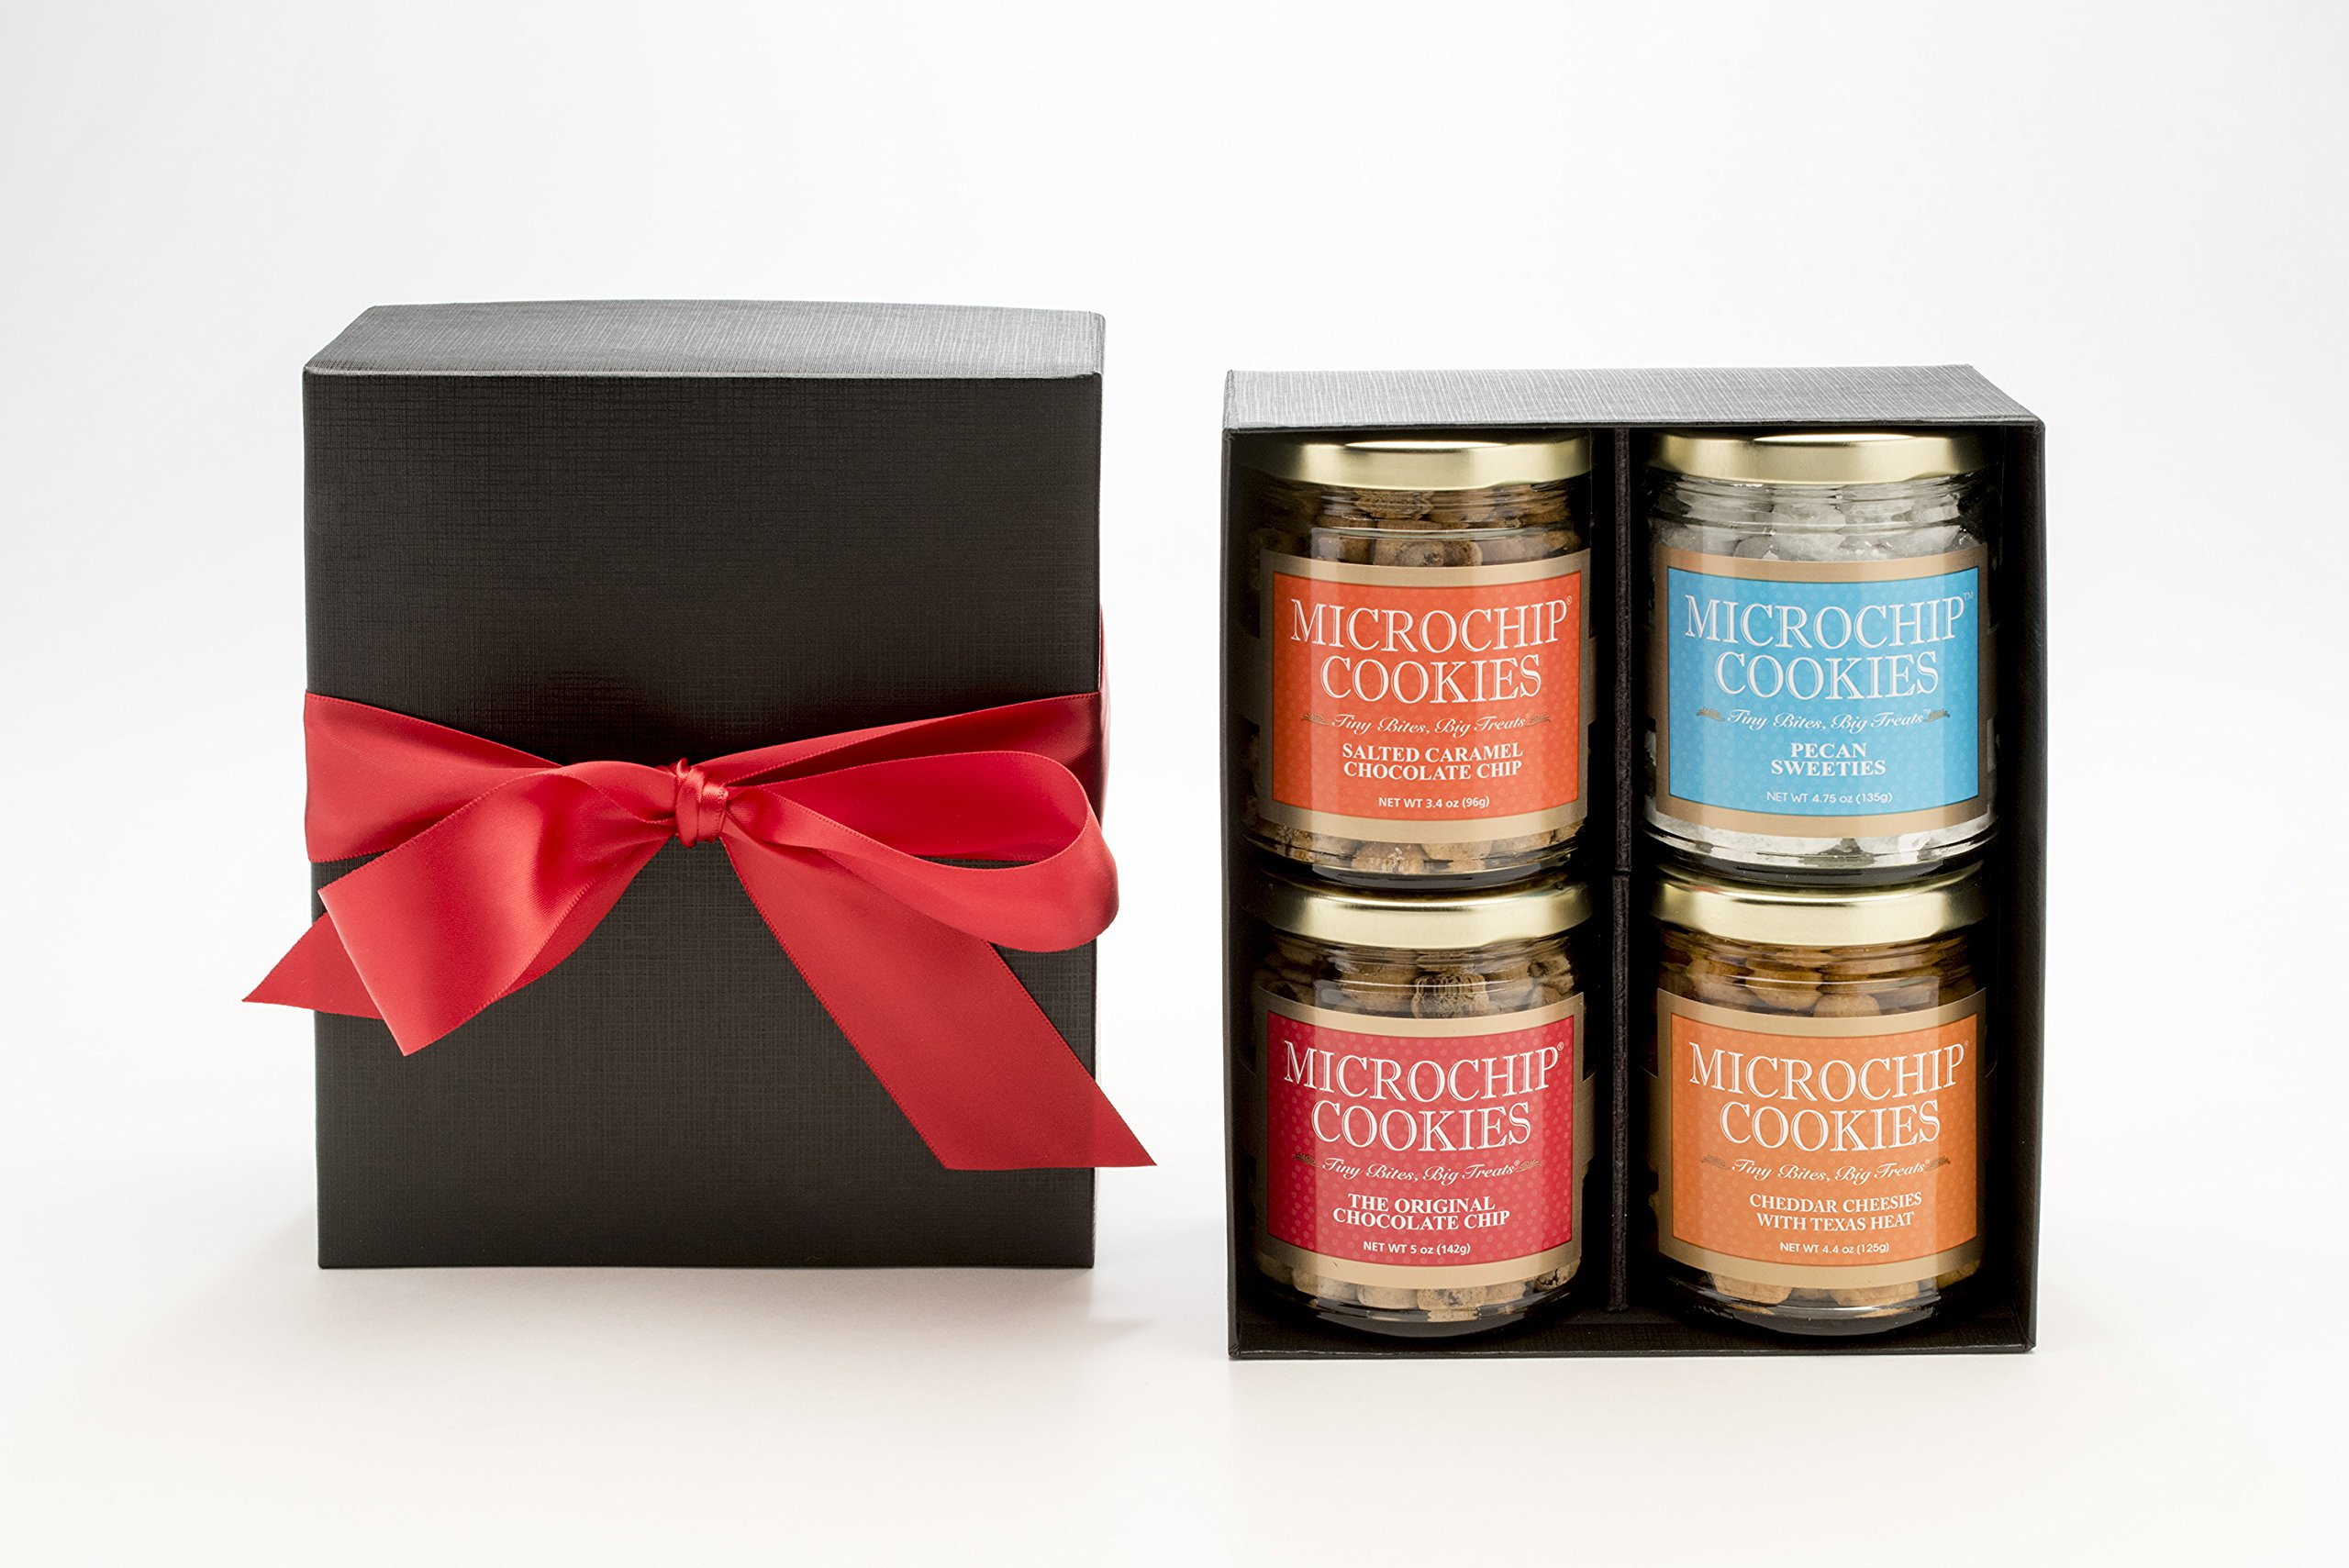 World's Tiniest, Most Irresistible Microchip Cookies - A Four Square Favorite - Four Jar Gift Box - Be The Party Favorite & Give The Gift Of Gourmet Microchips -Small Batch Handmade In Texas